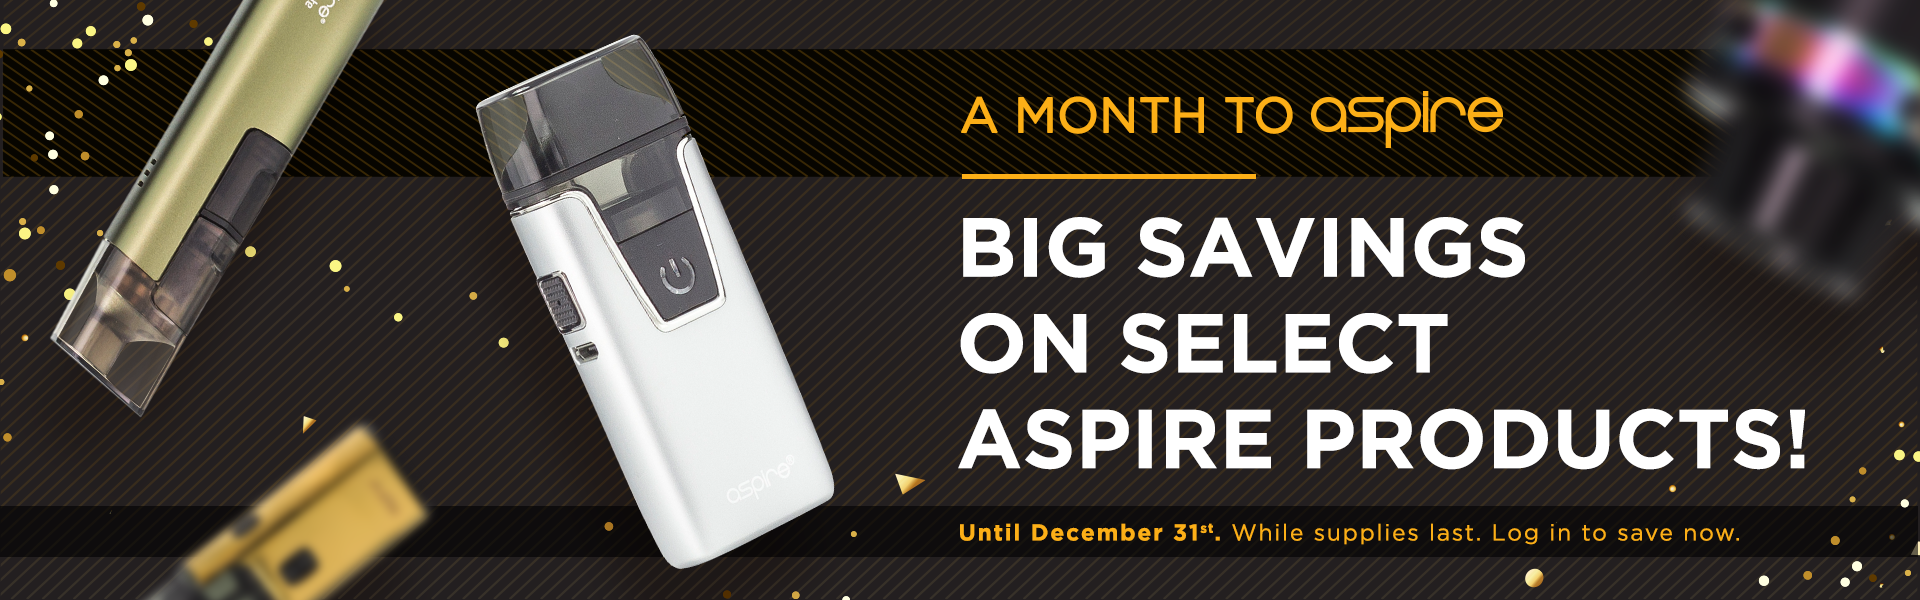 It's A Month to Aspire! Save on Select Aspire Products